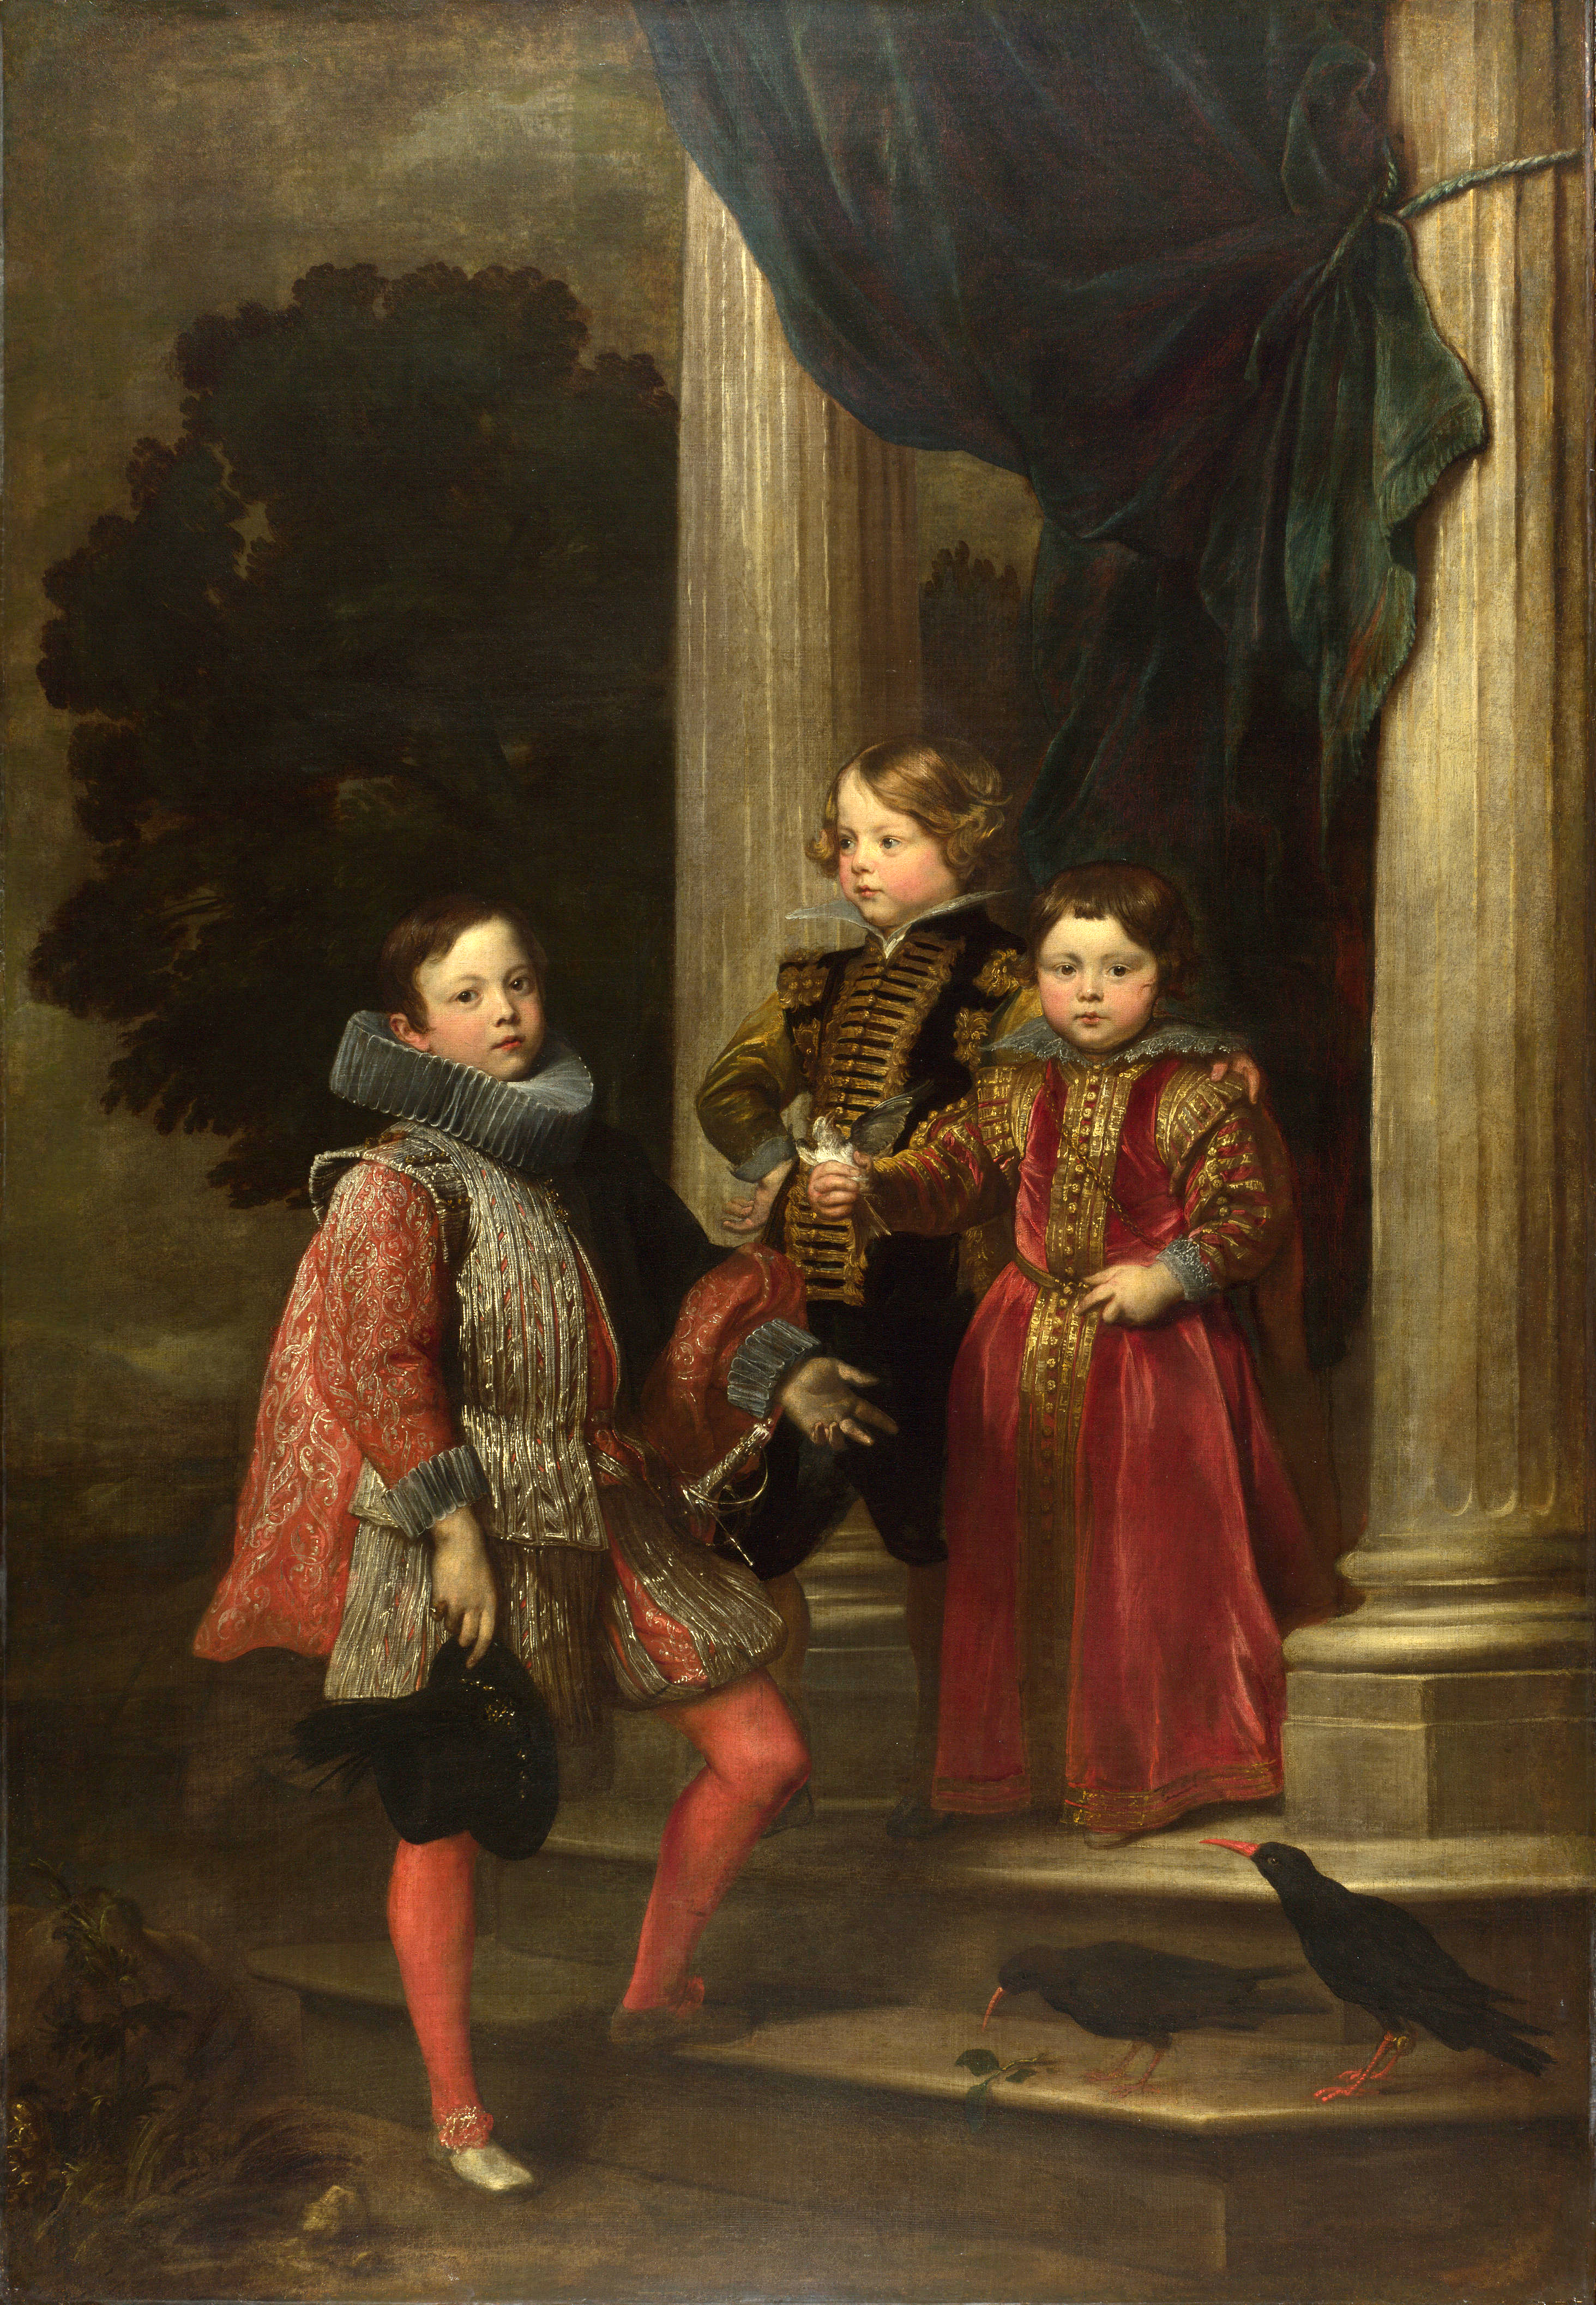 File:Van Dyck - The Balbi Children 1625-27.jpg